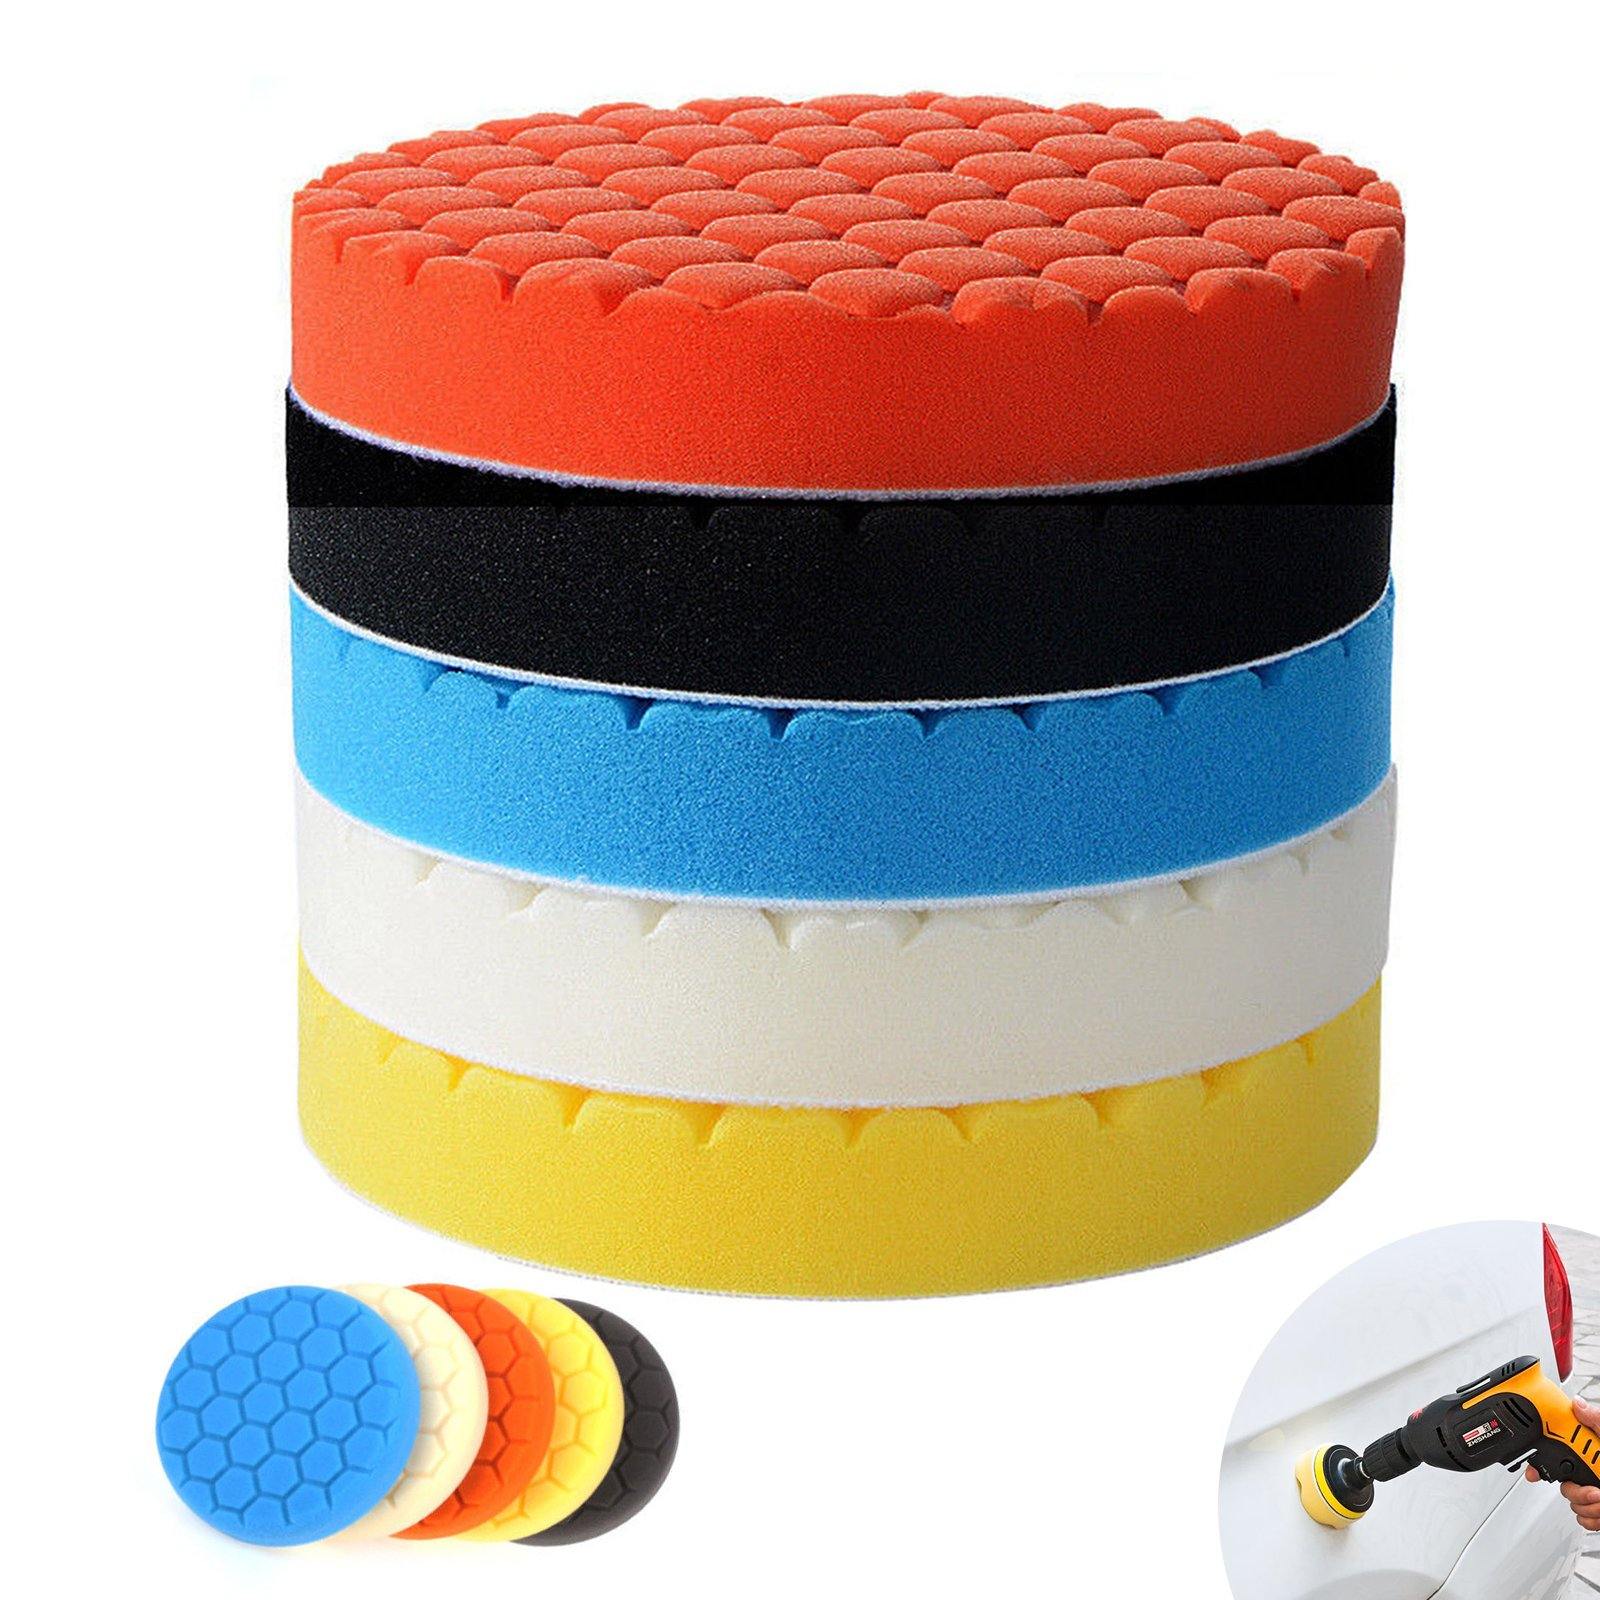 EEEKit 5-pack 7'' (180mm) Compound Drill Buffing Sponge Pads Polishing Pad for Car Polisher Boat Sanding, Polishing, Waxing, Sealing Glaze